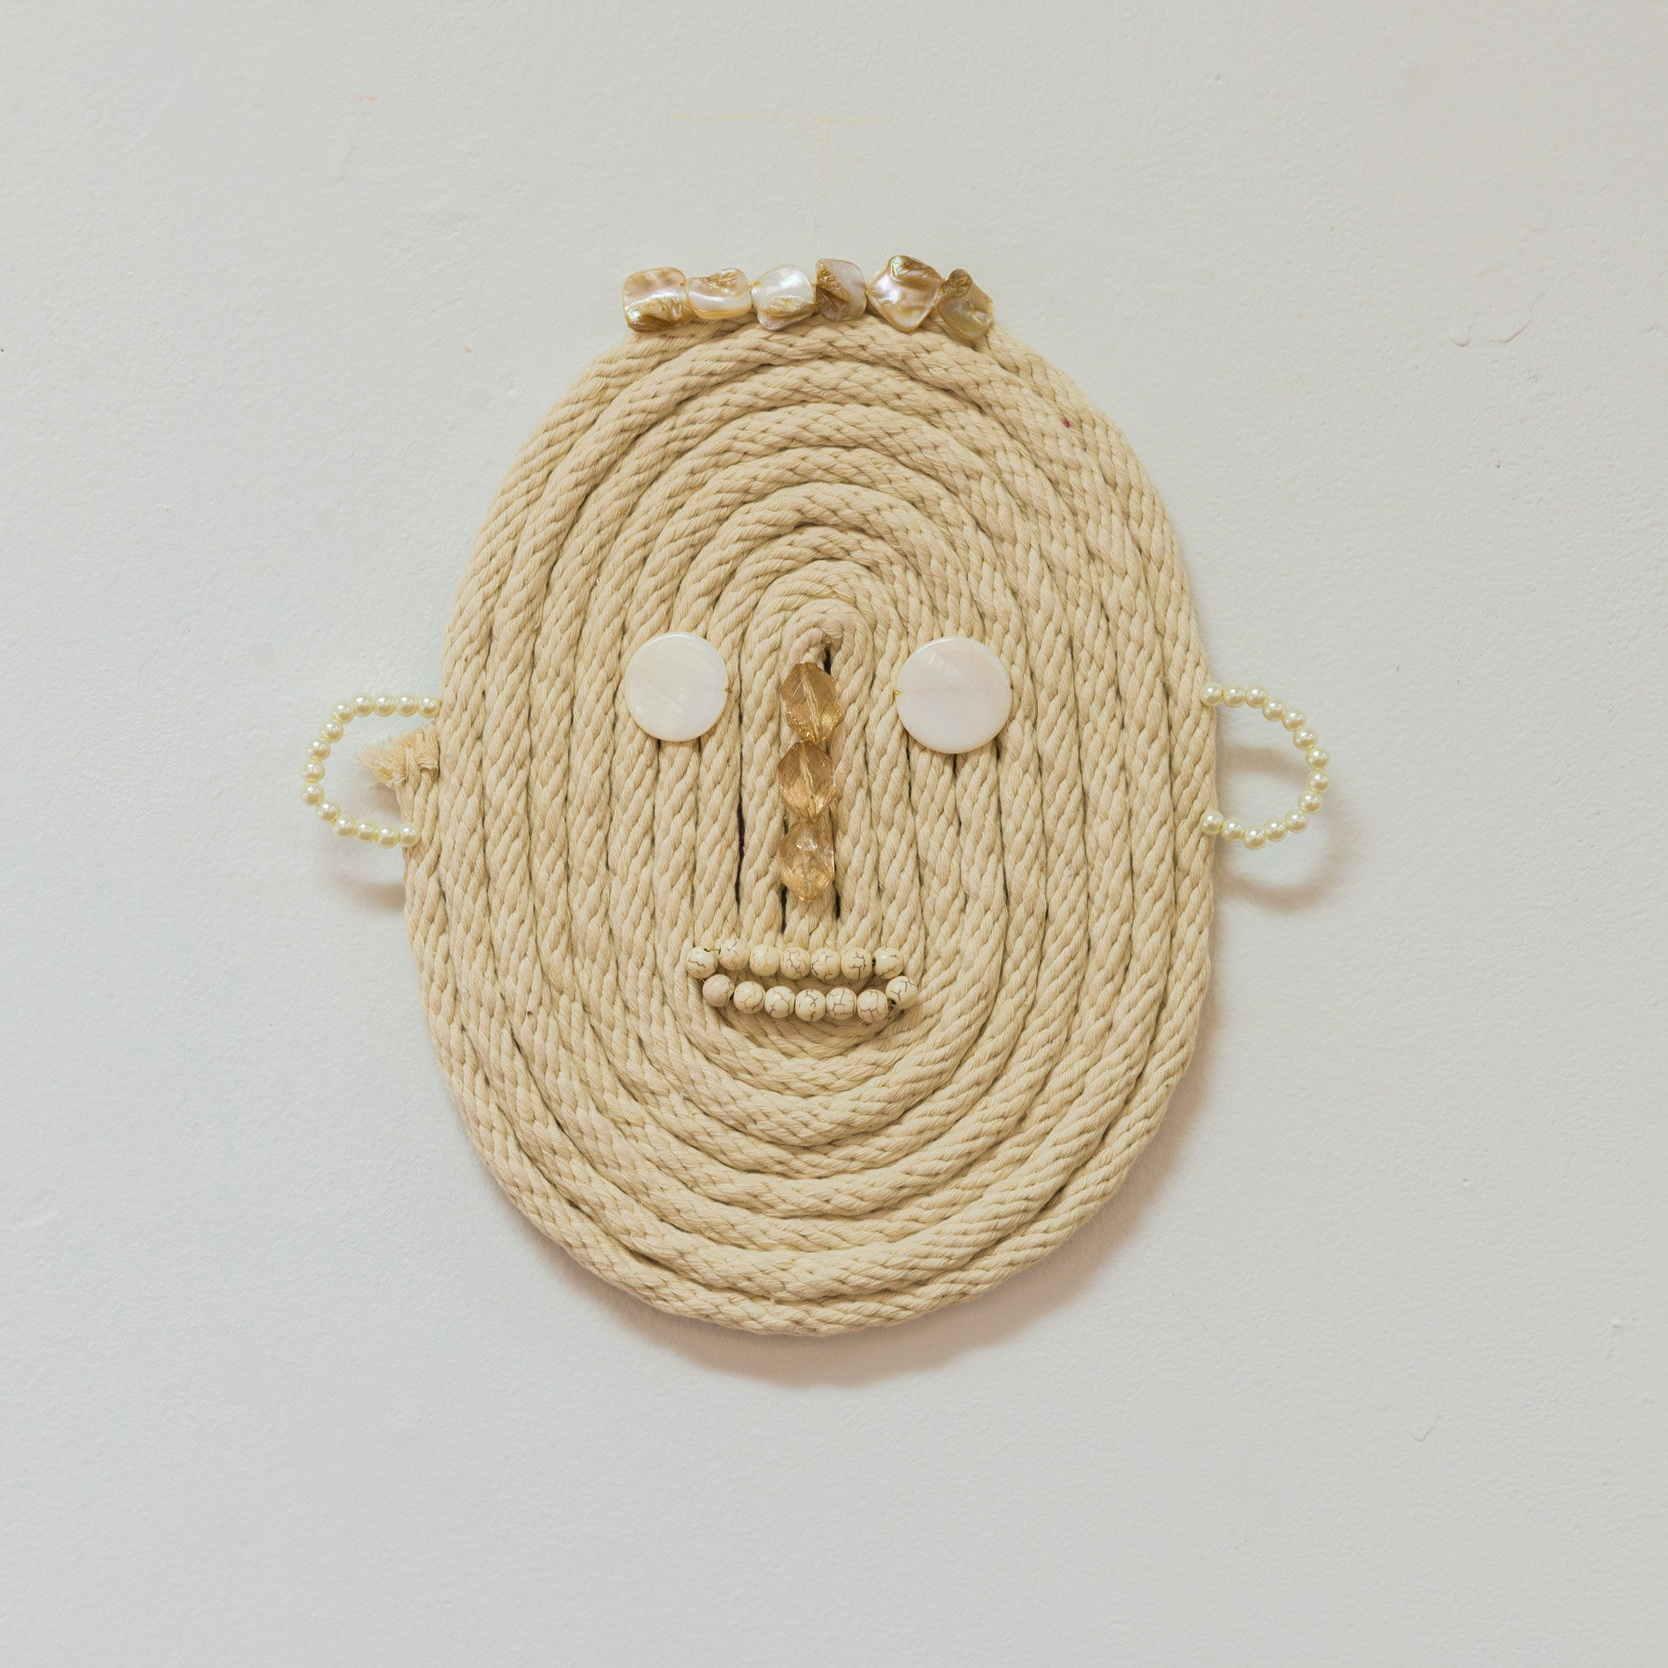 Josh (haunted by) , 2019 Cotton sash cord, shell and acrylic beads